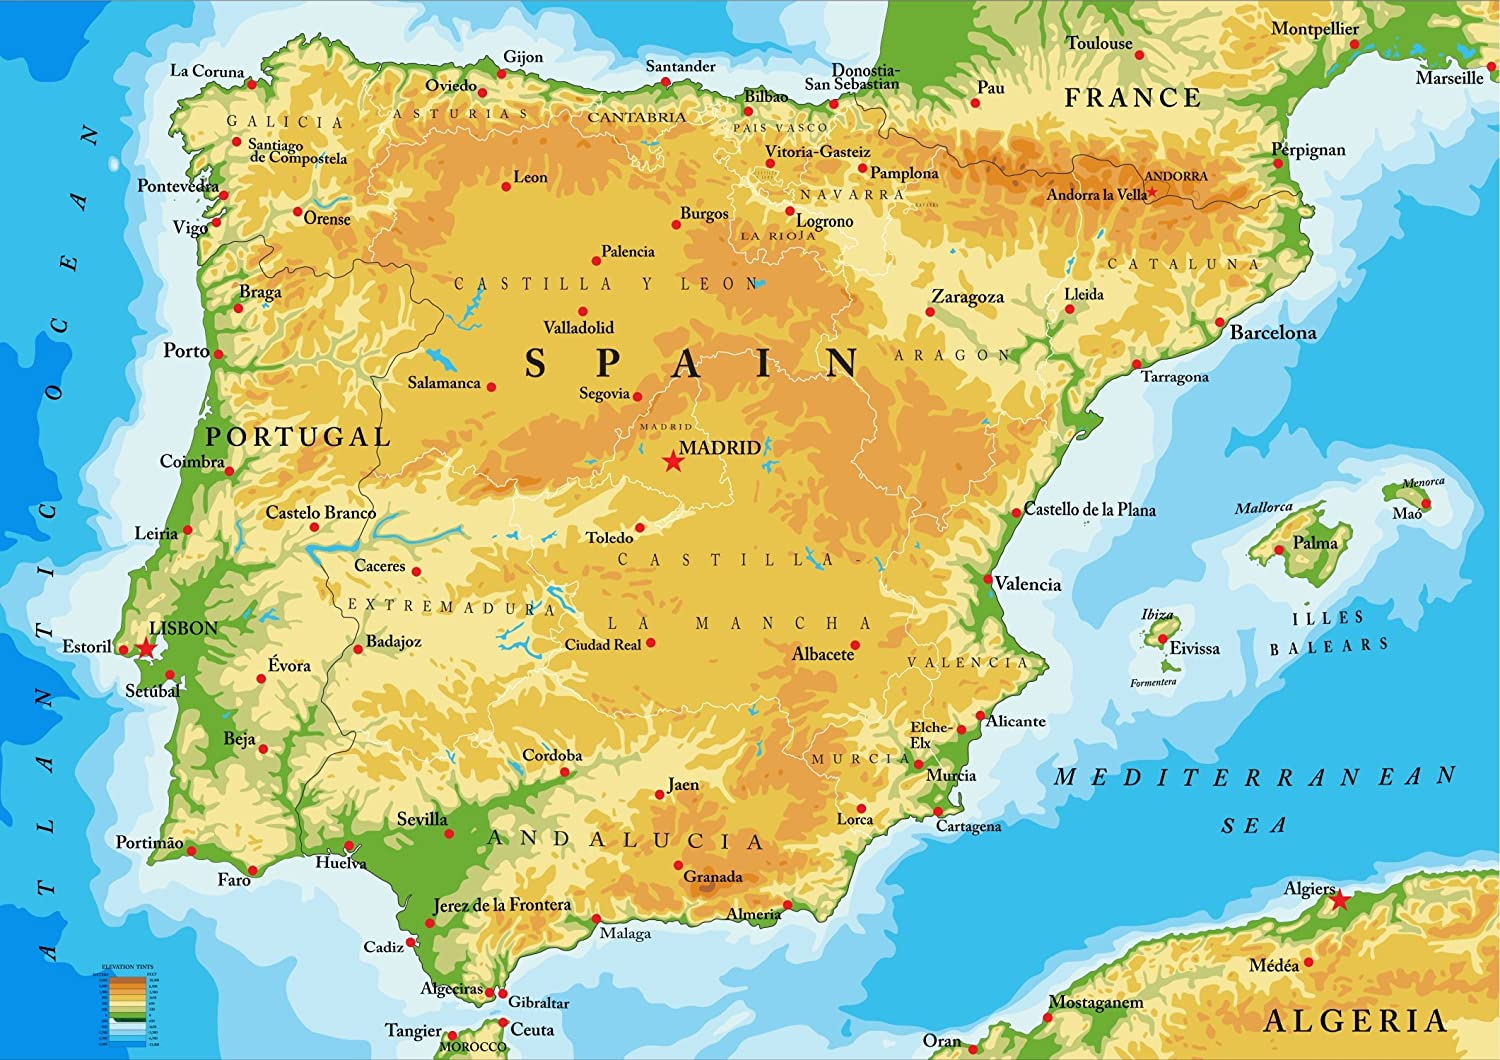 Jerez De La Frontera Karte.Sonicprint Map Of Spain And Portugal Showing All Major Cities Available Framed